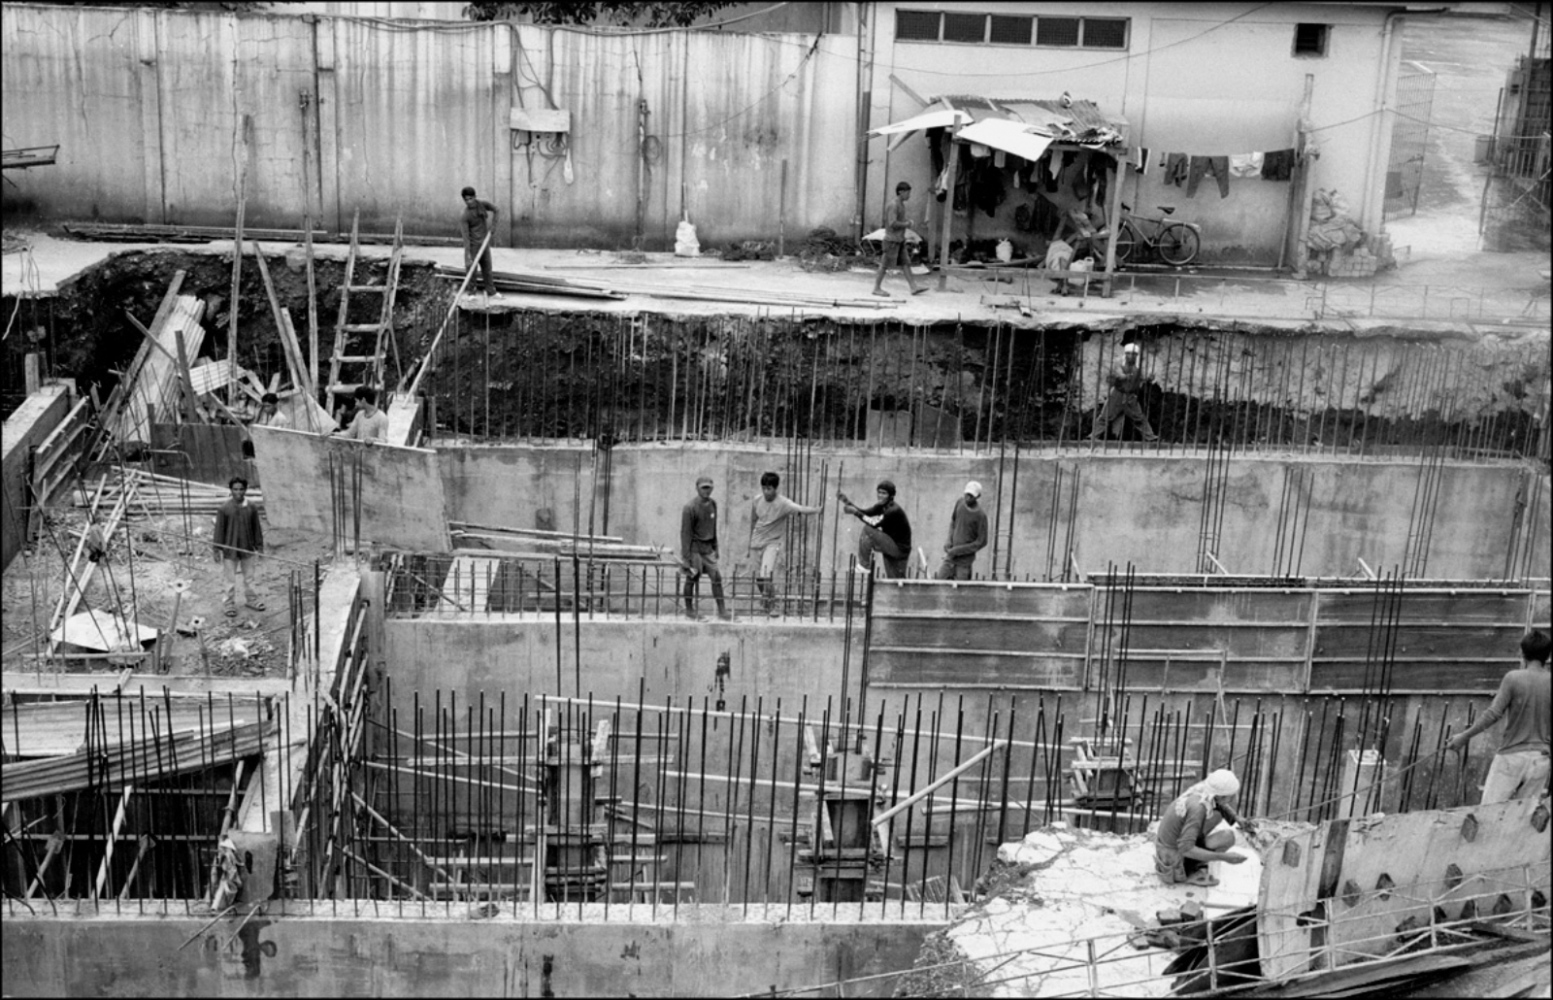 Construction Site, North Cemetery, Manila, Philippines, November 2005